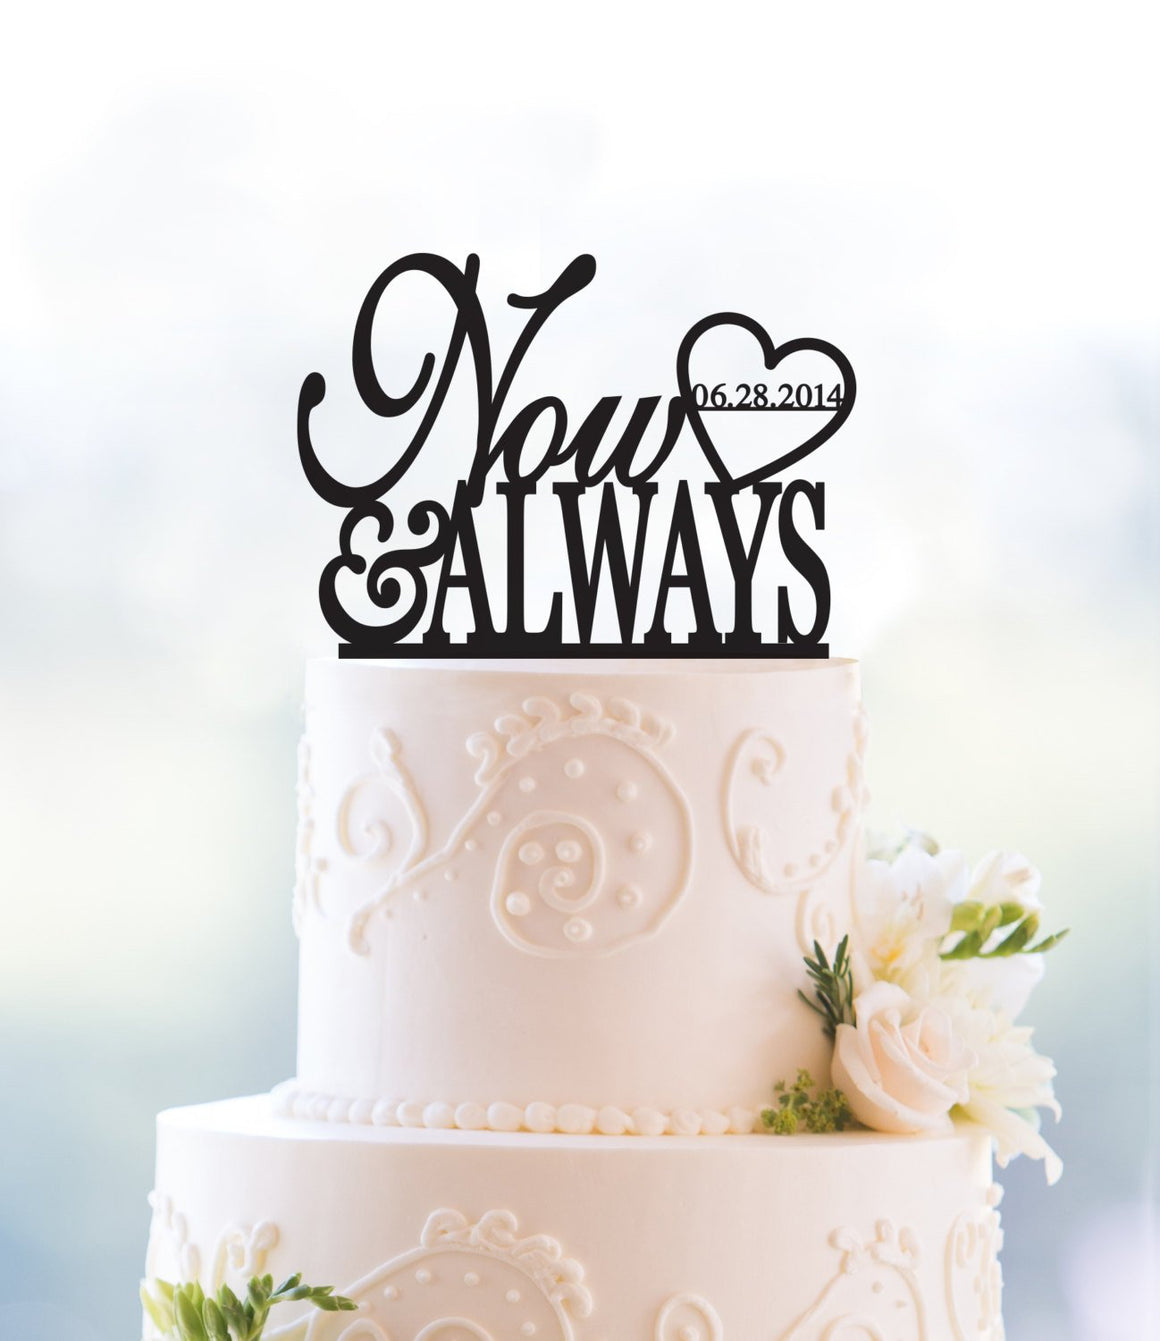 Now And Always Custom Cake Topper Acrylic Cake Topper Love Cake Decorations Wedding Cake Anniversary Gift Wedding Gift Bridal Gift - (T094)